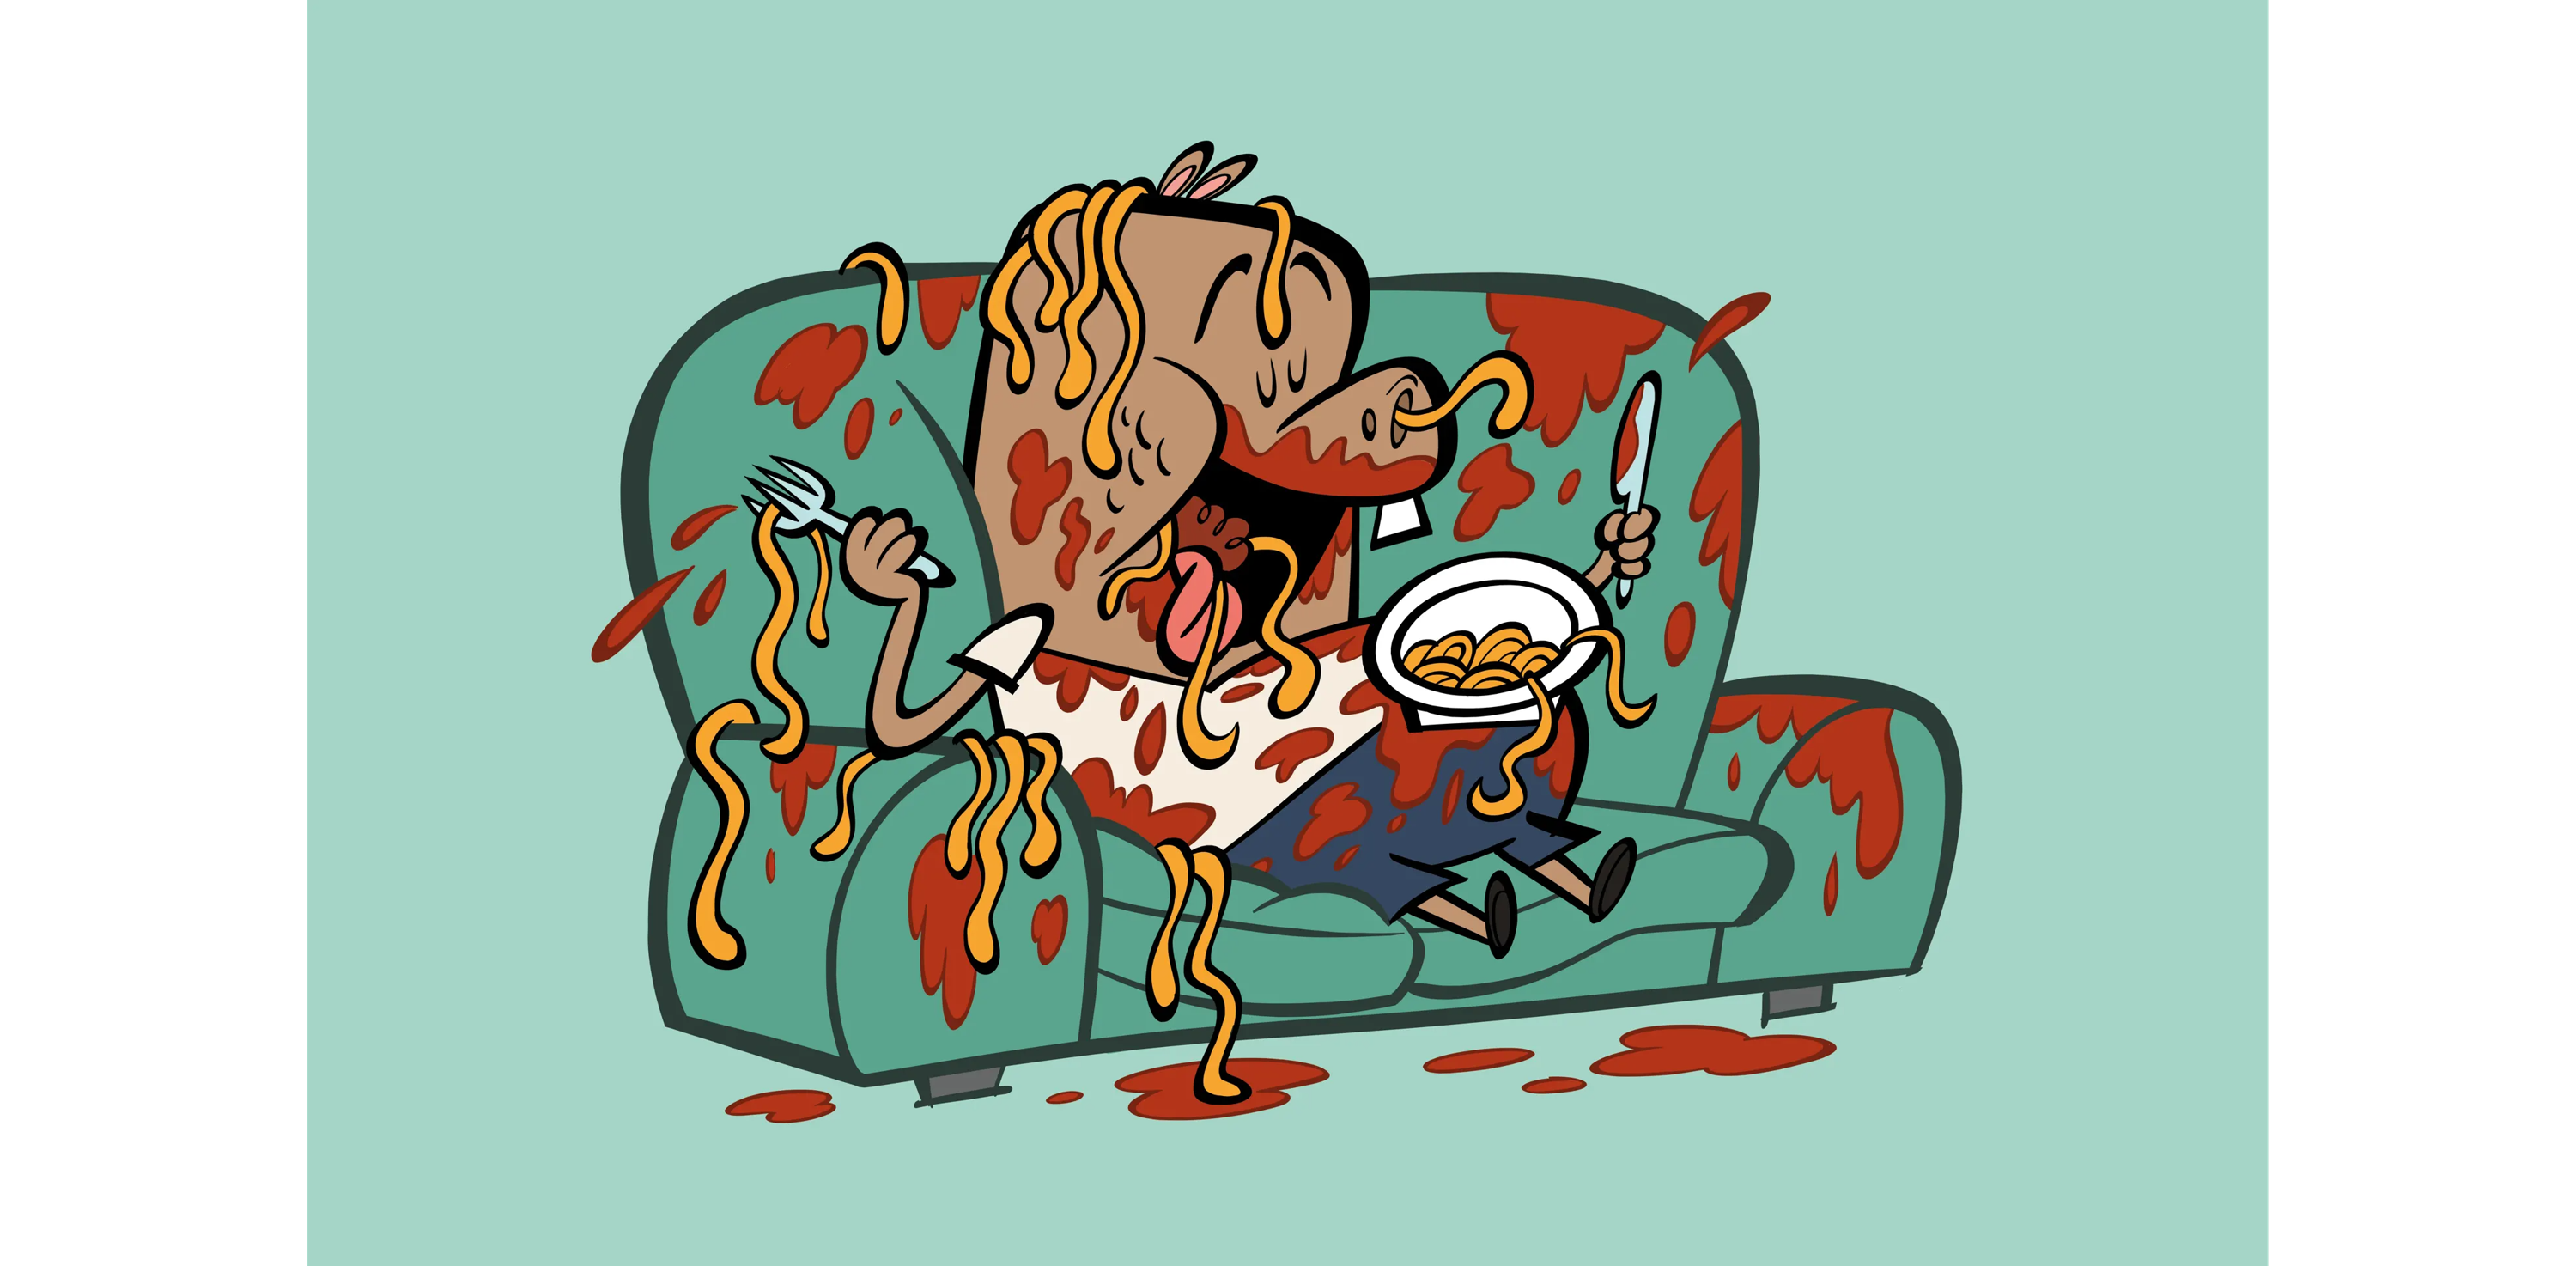 illustrated character eating spaghetti